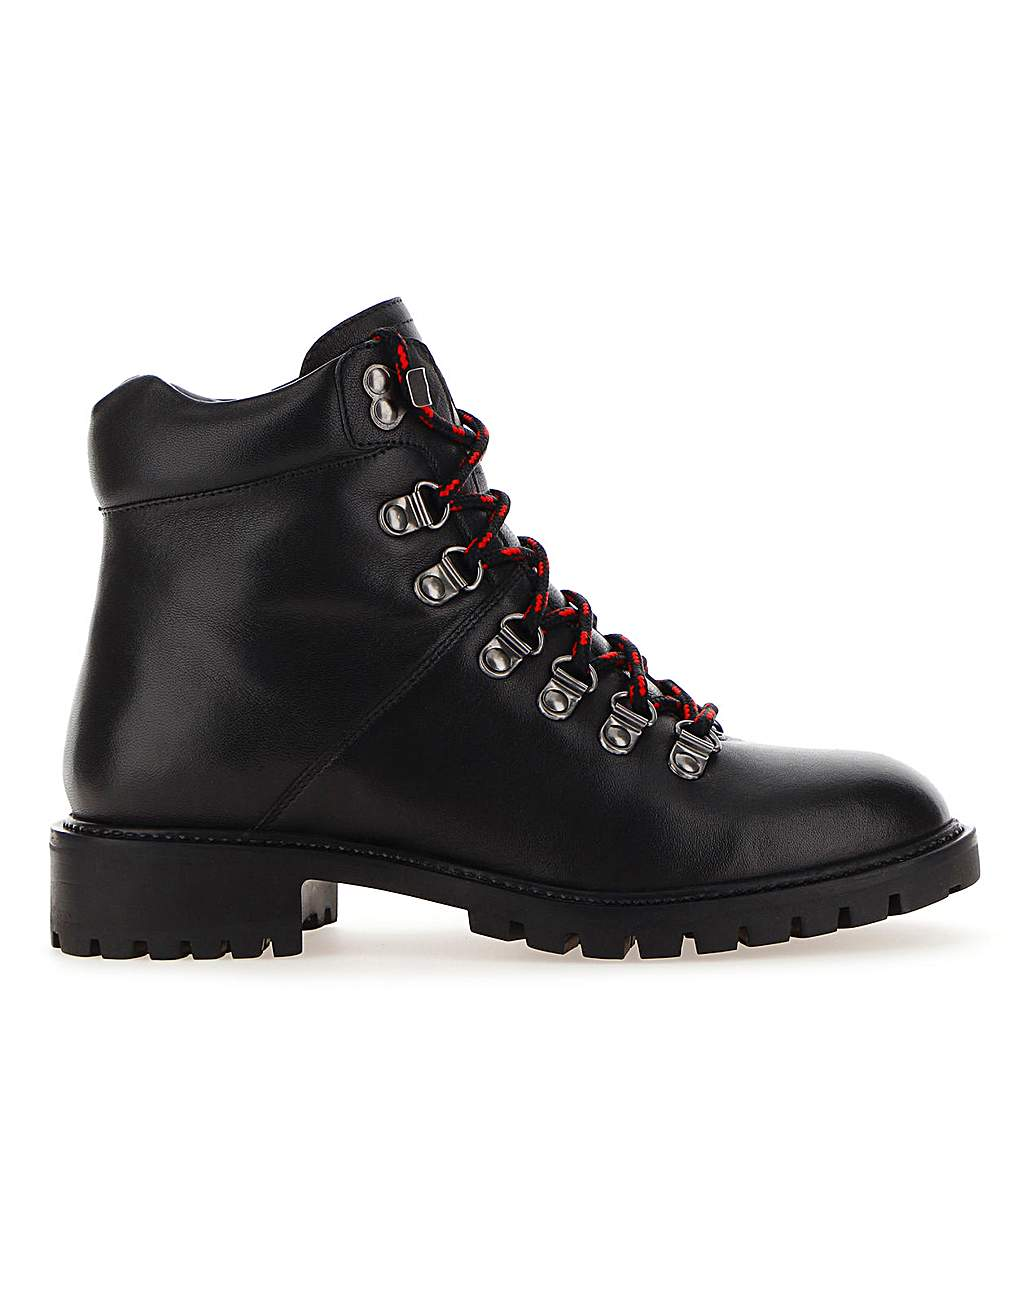 Leather Hiker Style Boots